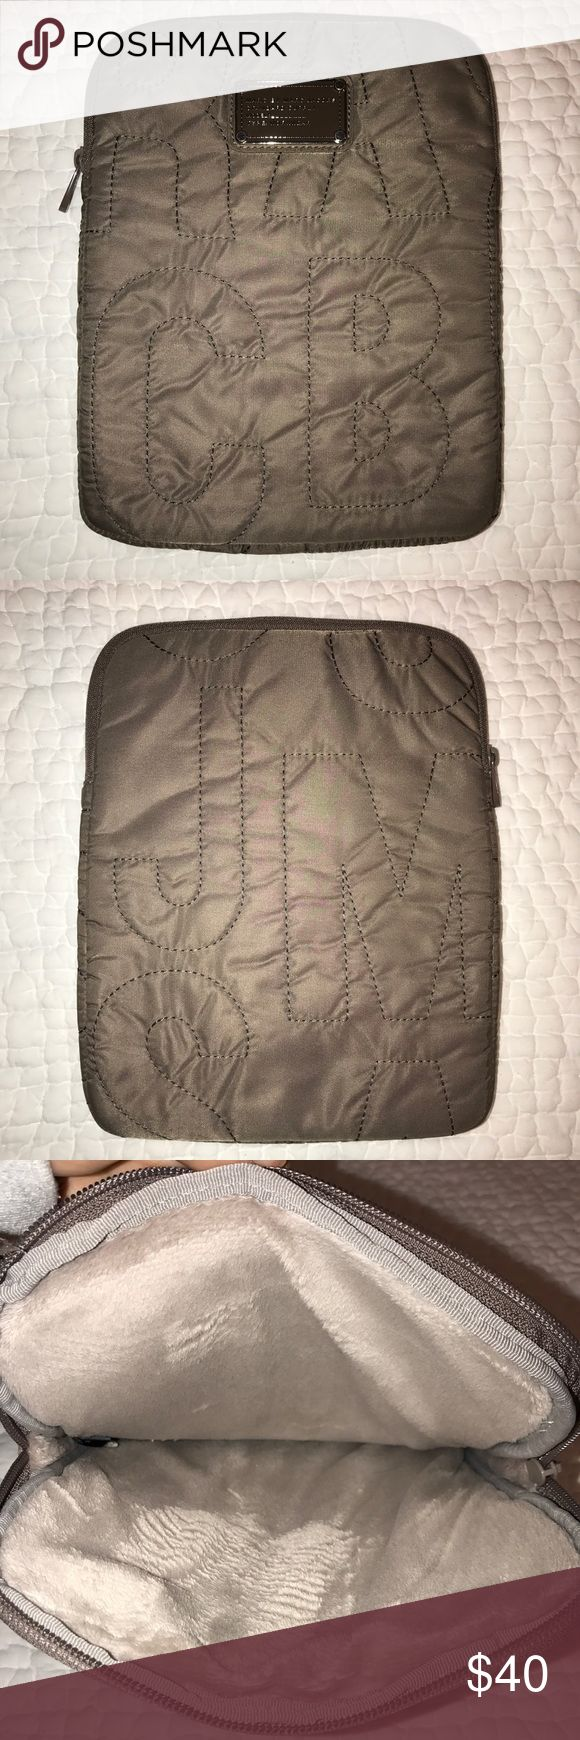 Marc Jacobs Pretty Nylon iPad Case Stylish and protective iPad case. In great condition - like new! Offers welcome. Marc Jacobs Accessories Tablet Cases